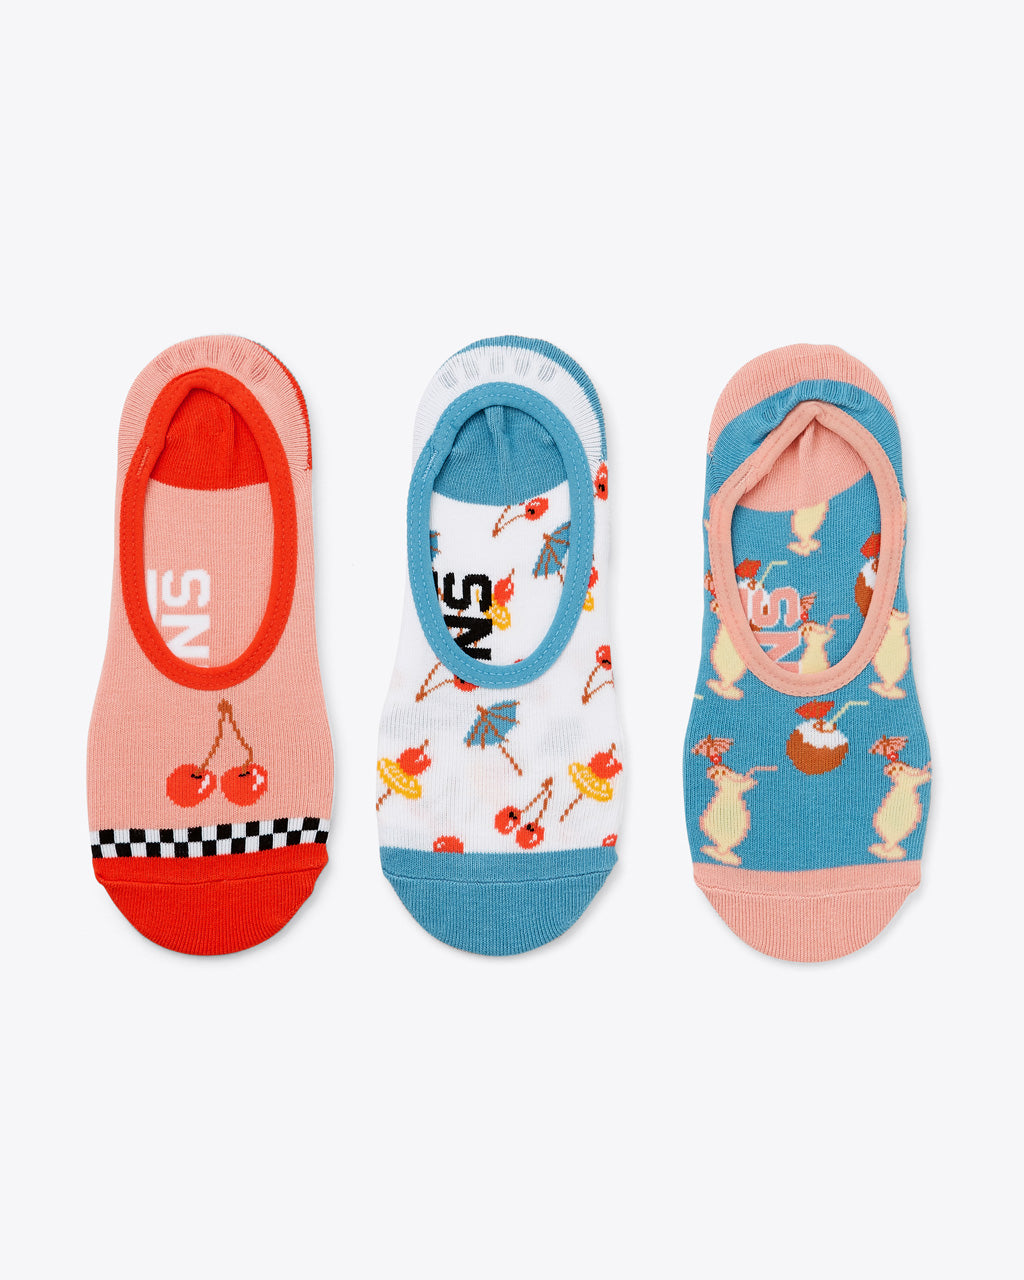 set of 3 vans no show socks in variety of tropical drink prints